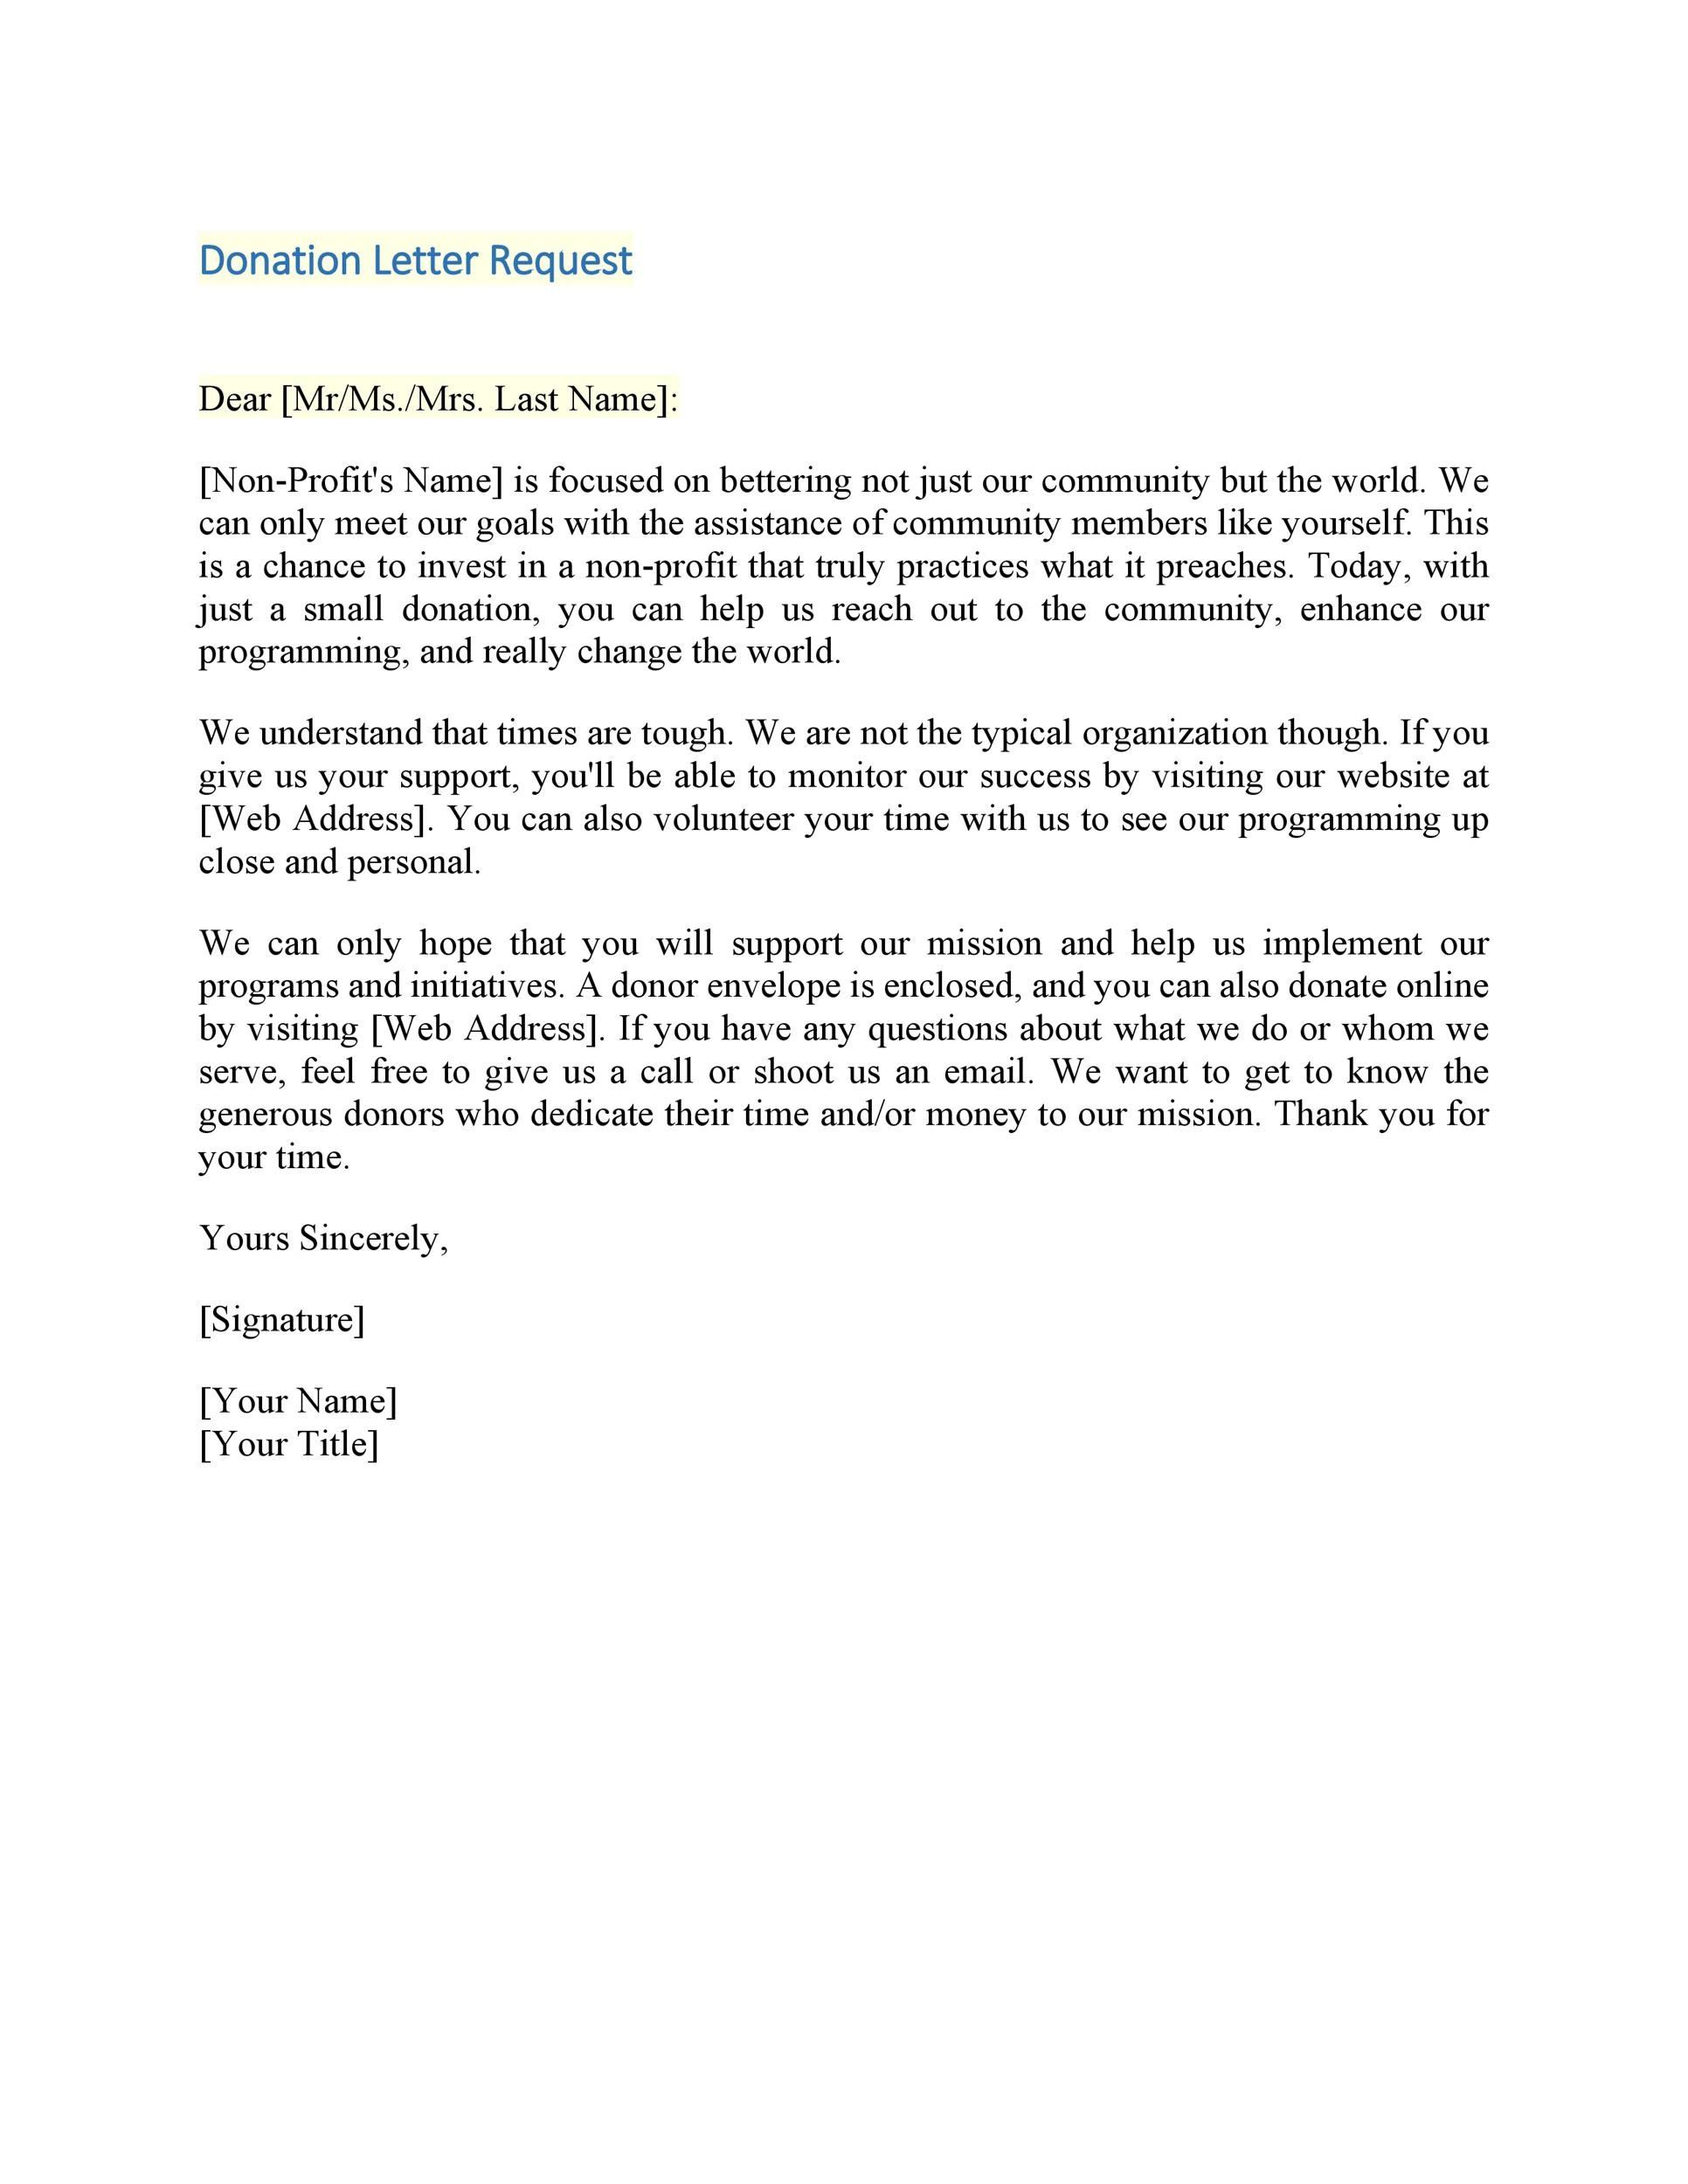 sample of donation letter for non profit organization